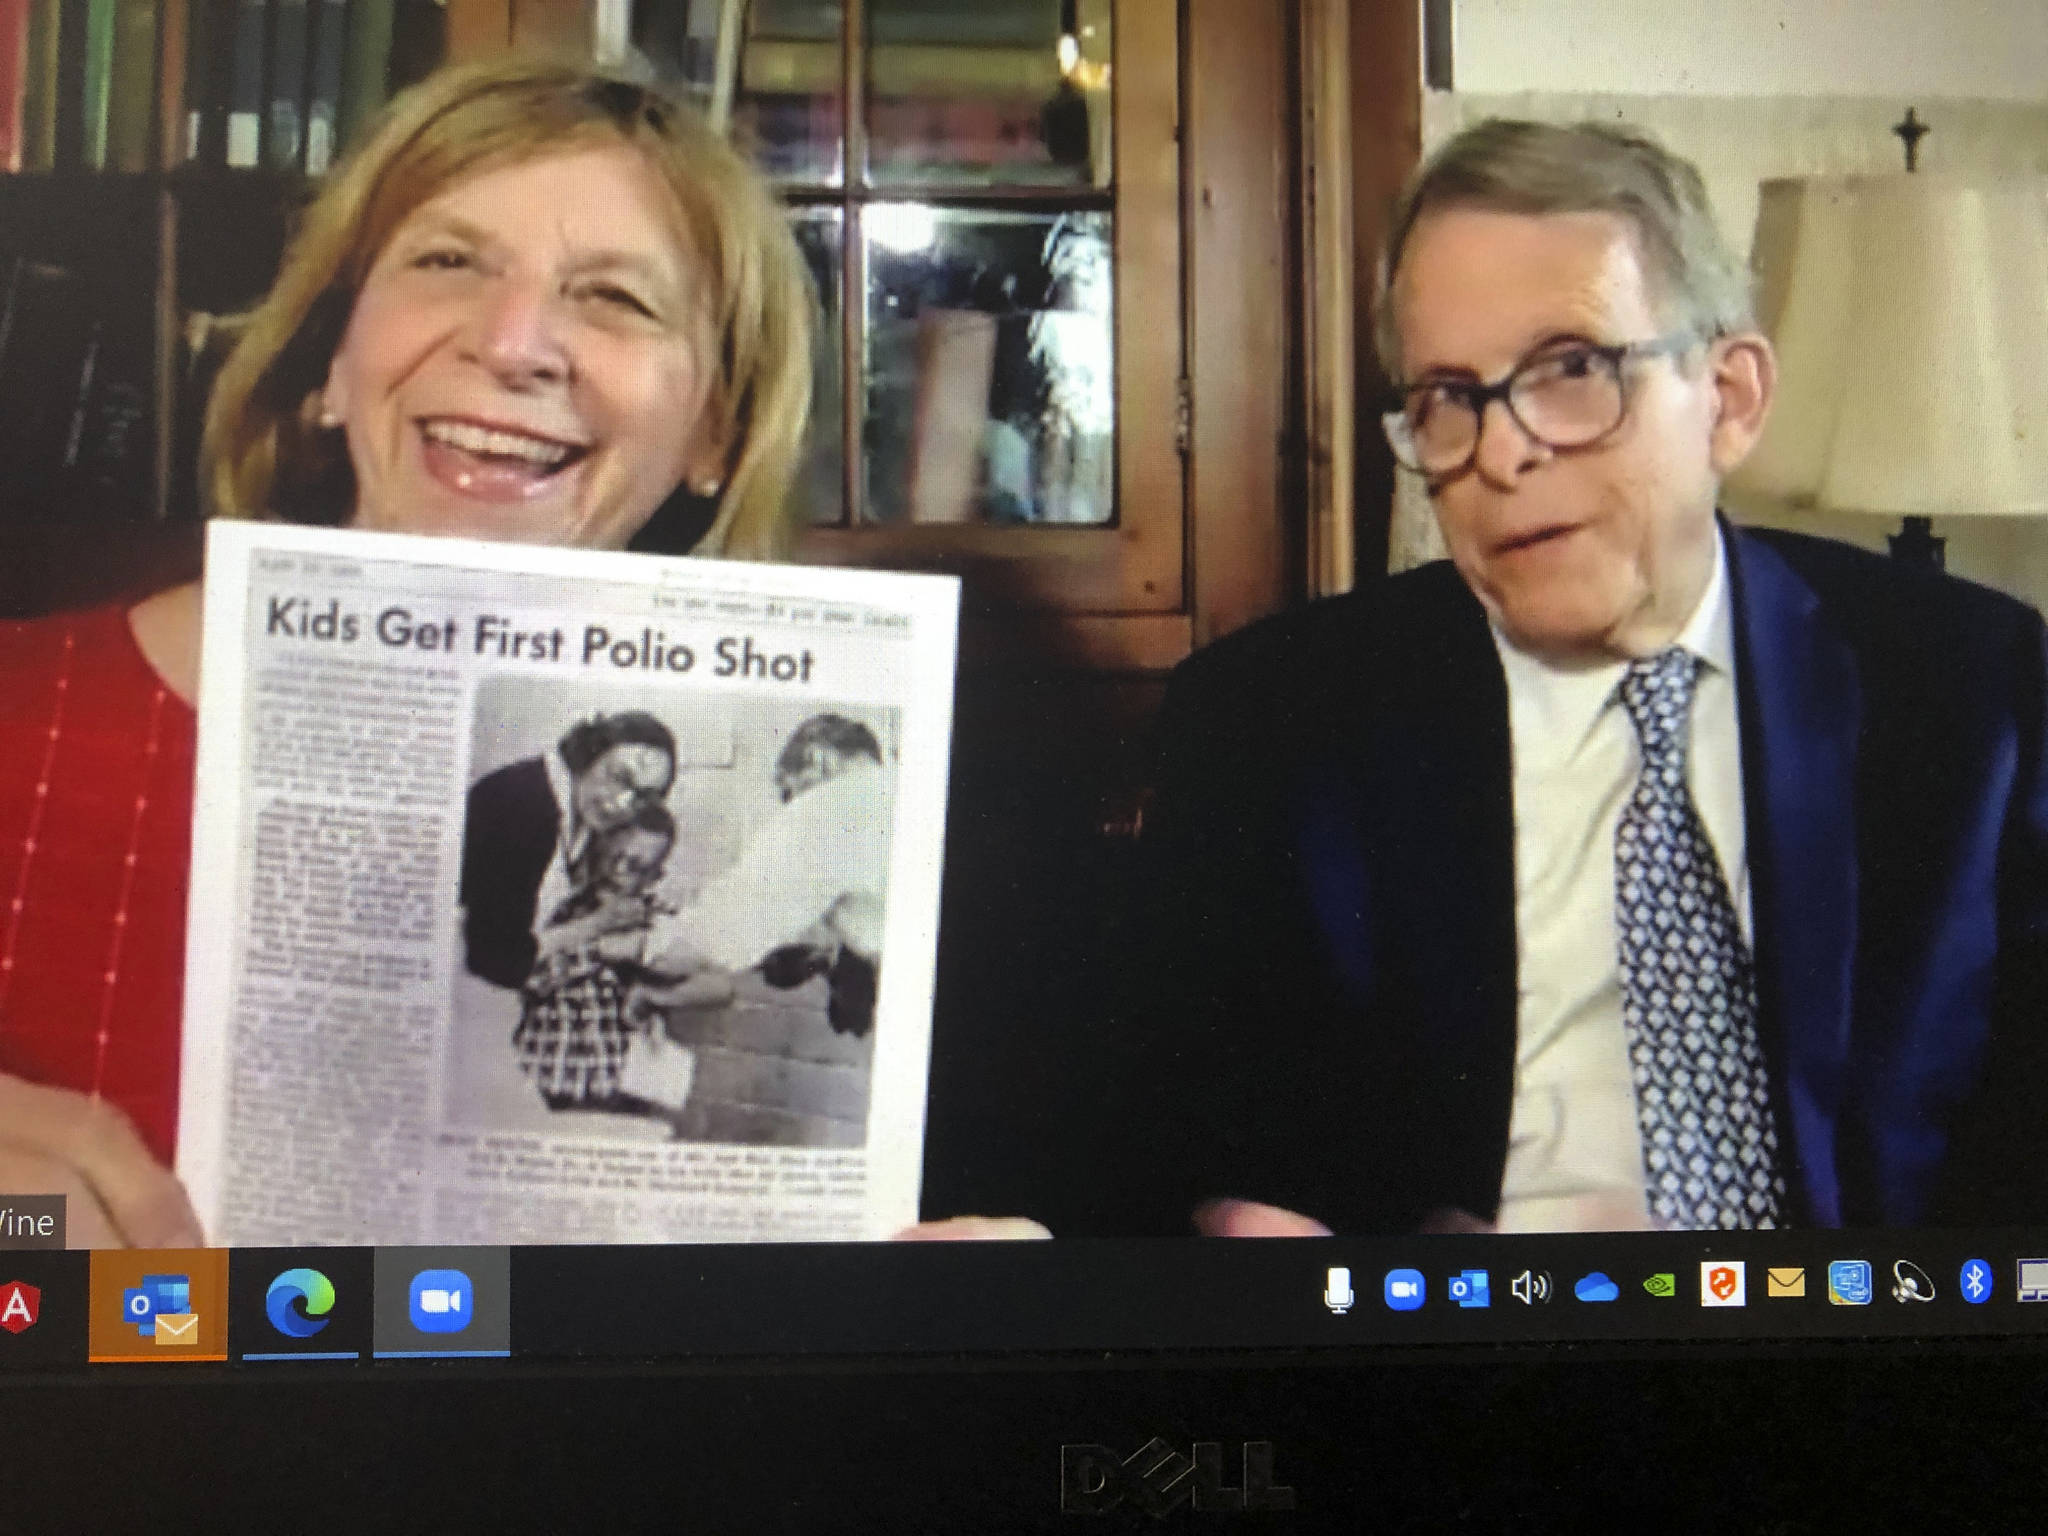 This photograph of a computer screen during a virtual interview on April 9, 2021, shows Ohio Gov. Mike DeWine, right, as he sits with his wife Fran DeWine while she holds a printed copy of the Yellow Springs News issue page from April 28, 1955 that shows DeWine as a then second-grader, while receiving his polio vaccination. Tens of millions of today's older Americans lived through the polio epidemic, their childhood summers dominated by concern about the virus. Some parents banned their kids from public swimming pools and neighborhood playgrounds and avoided large gatherings. Some of those from the polio era are sharing their memories with today's youngsters as a lesson of hope for the battle against COVID-19. Soon after polio vaccines became widely available, U.S. cases and death tolls plummeted to hundreds a year, then dozens in the 1960s, and to U.S. eradication in 1979.(AP Photo/Dan Sewell)